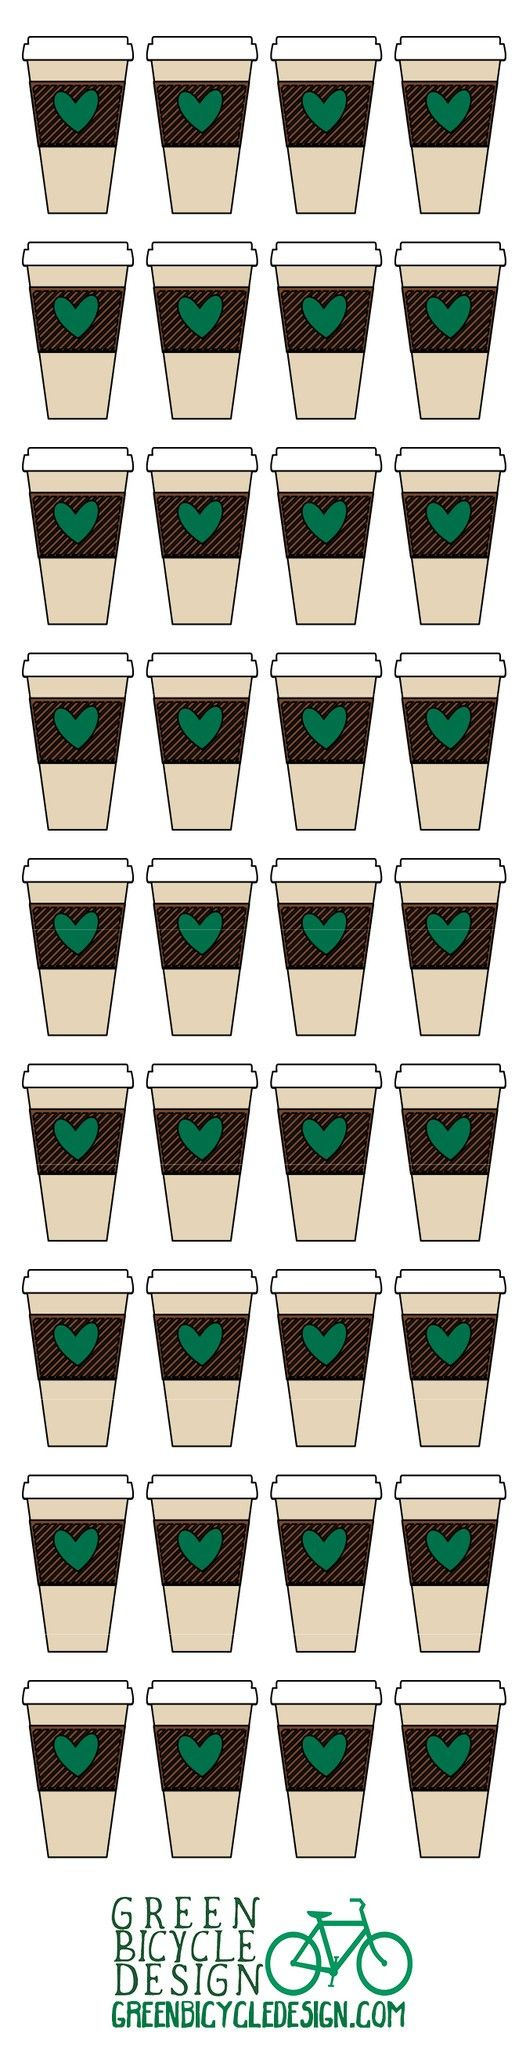 Coffee date? Coffee club member? Lover of coffee? These stickers are perfect for all coffee occasions! This listing is for one sheet of 36 Starbucks-Style Coffee Cup Stickers. Stickers are kiss-cut an